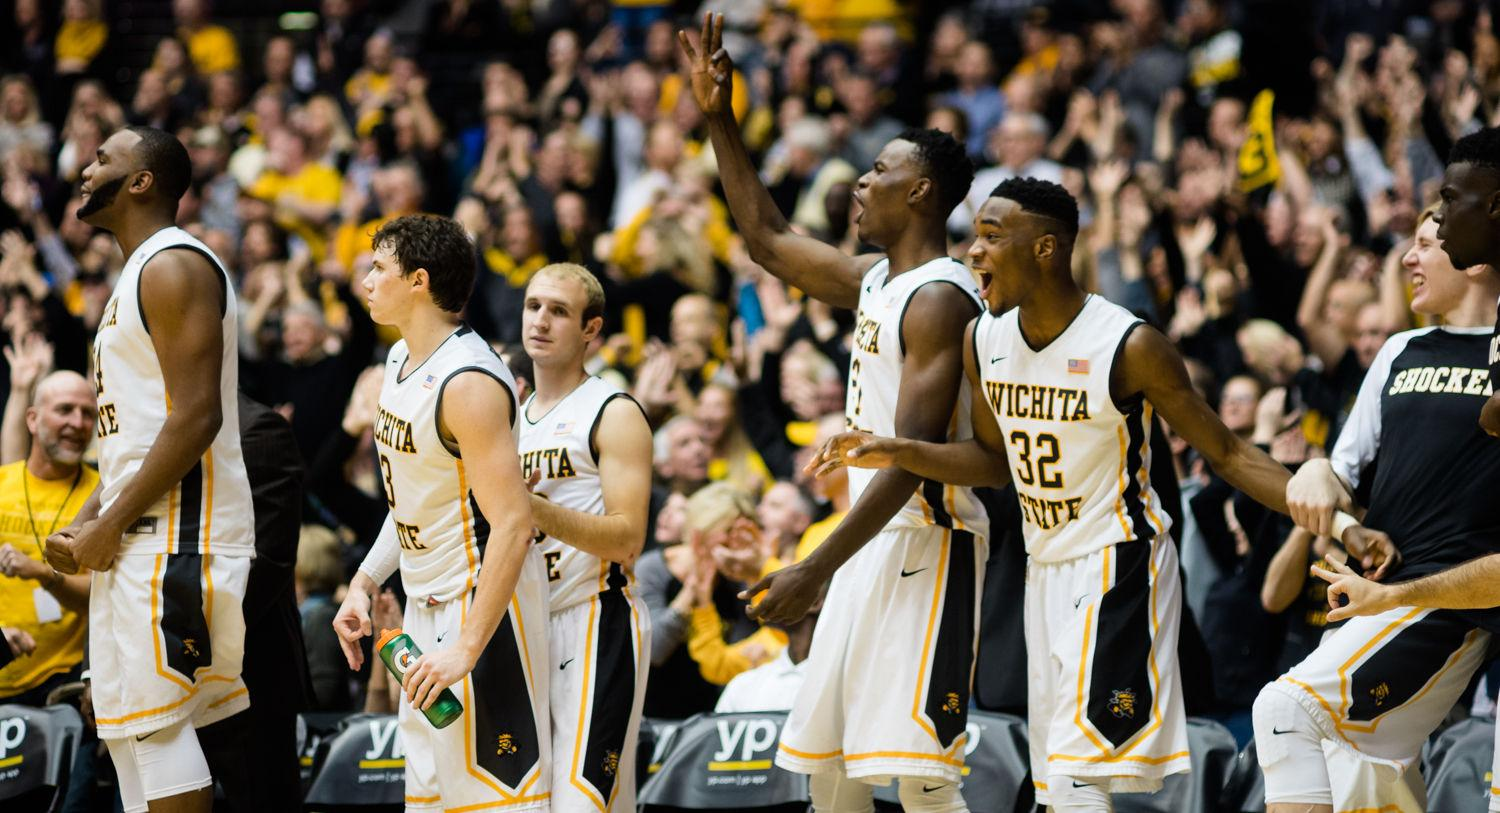 The Shocker bench celebrates a three-point basket Wednesday at Charles Koch Arena against Evansville. Wichita State outlasted the Purple Aces 67-64 to remain undefeated in Missouri Valley Conference play.